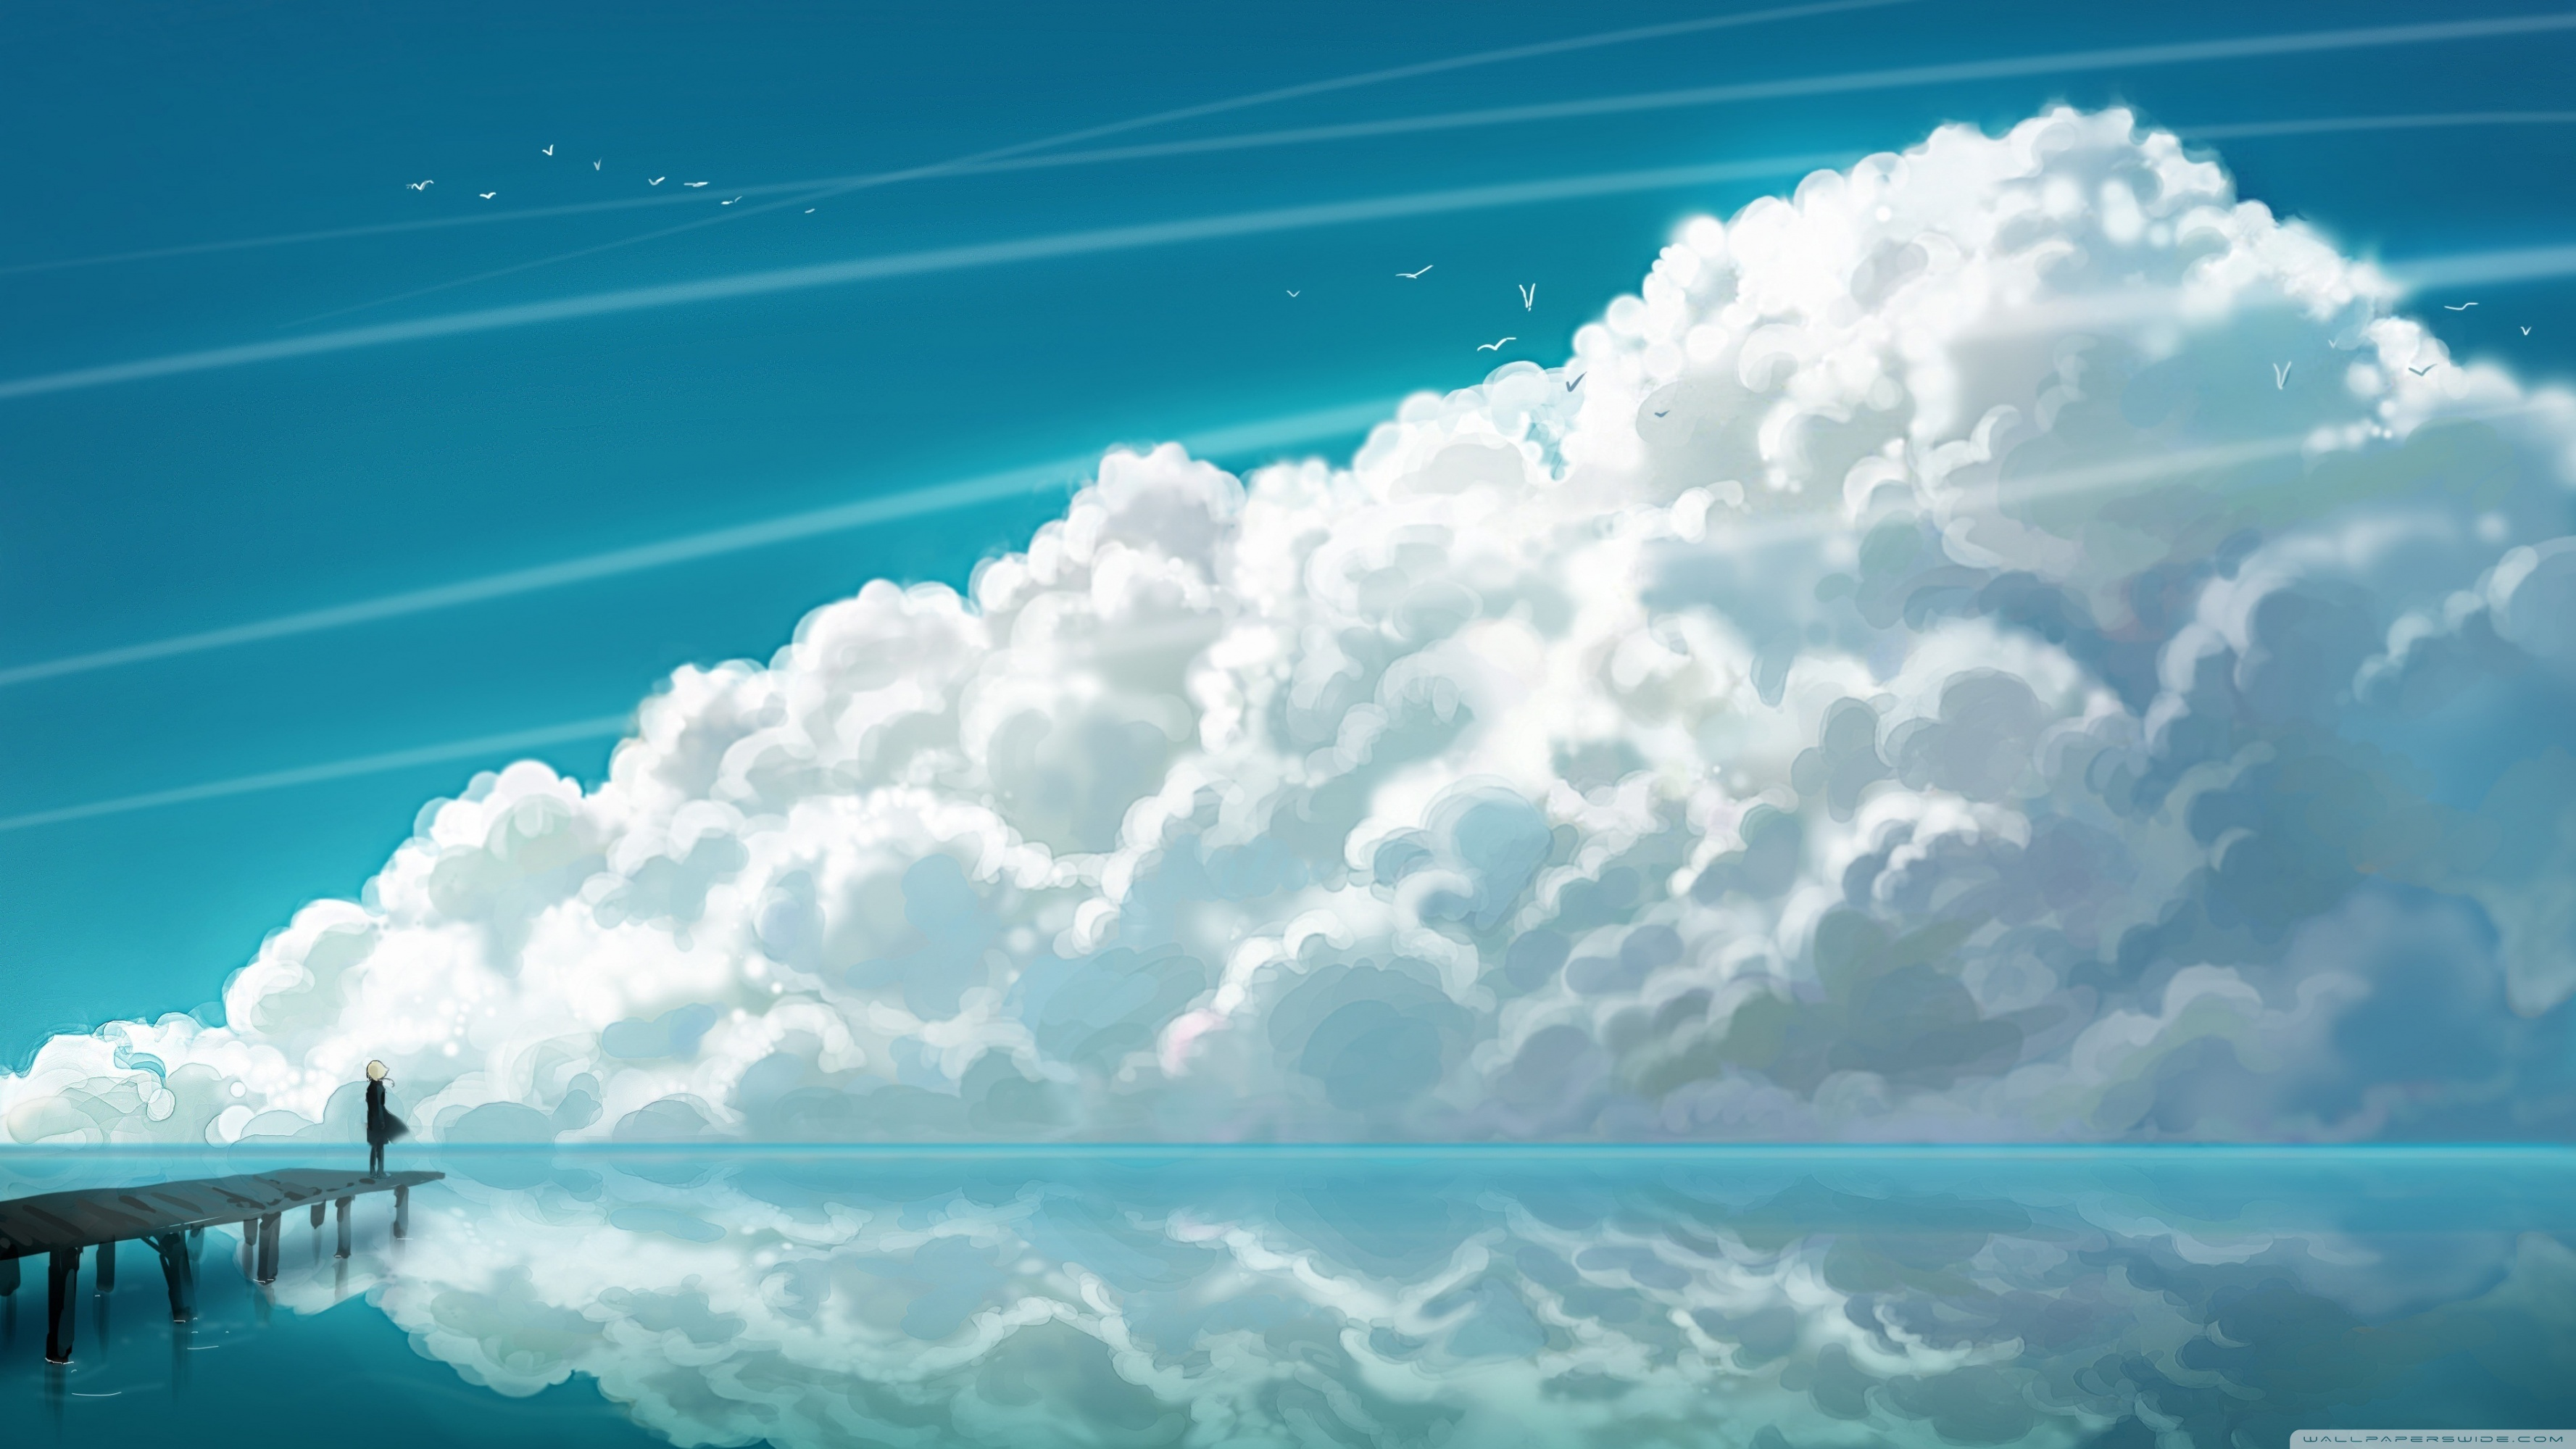 sky_clouds-wallpaper-3554x1999